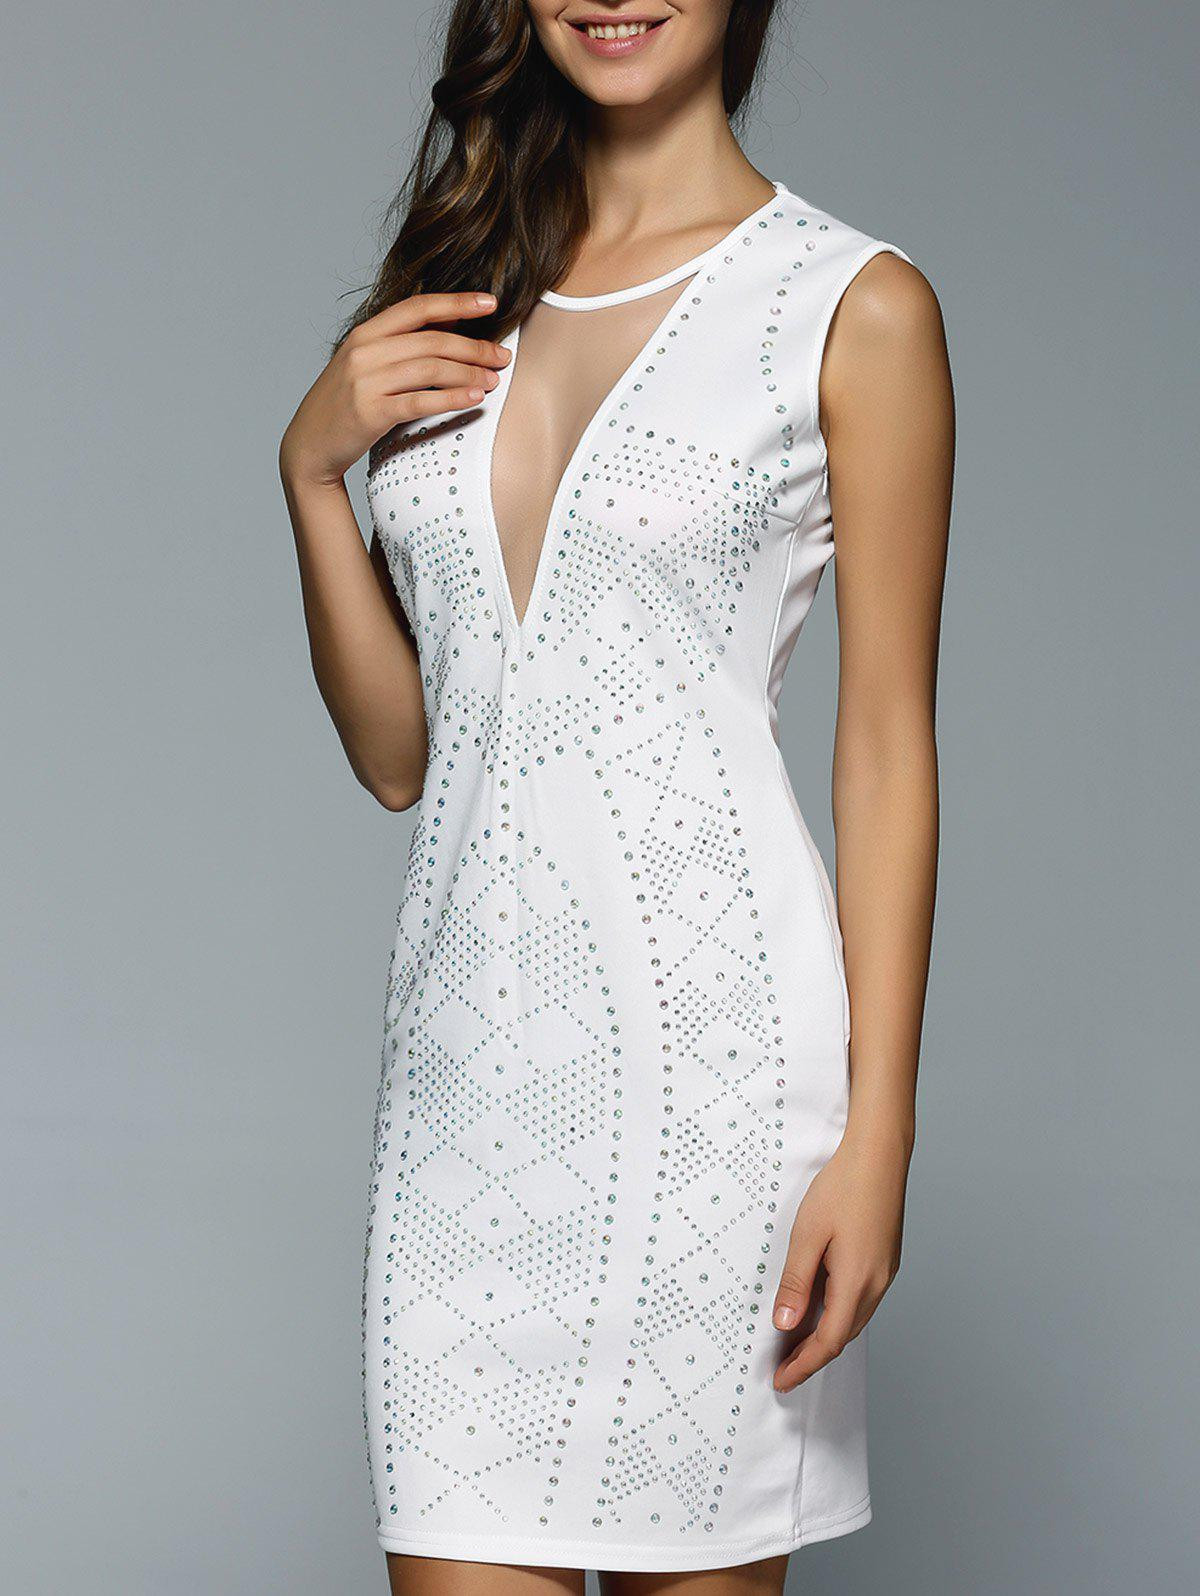 Mesh See-Through Beaded Bodycon Dress - WHITE S